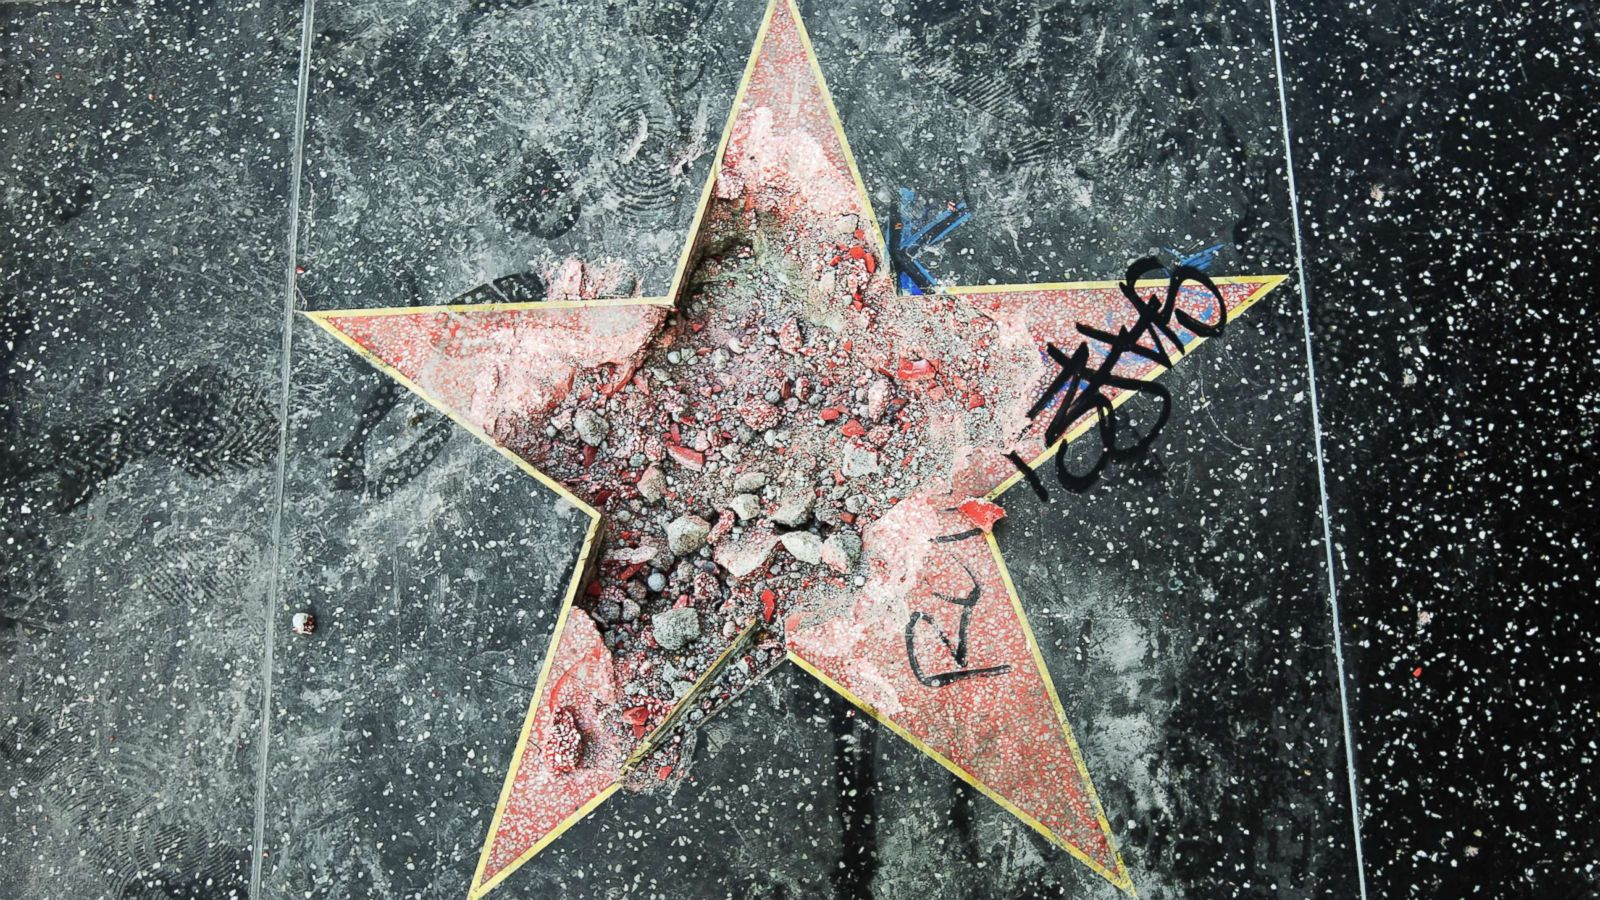 Man Who Destroyed Donald Trump's Star Got Bailed Out by the First Person to Smash It